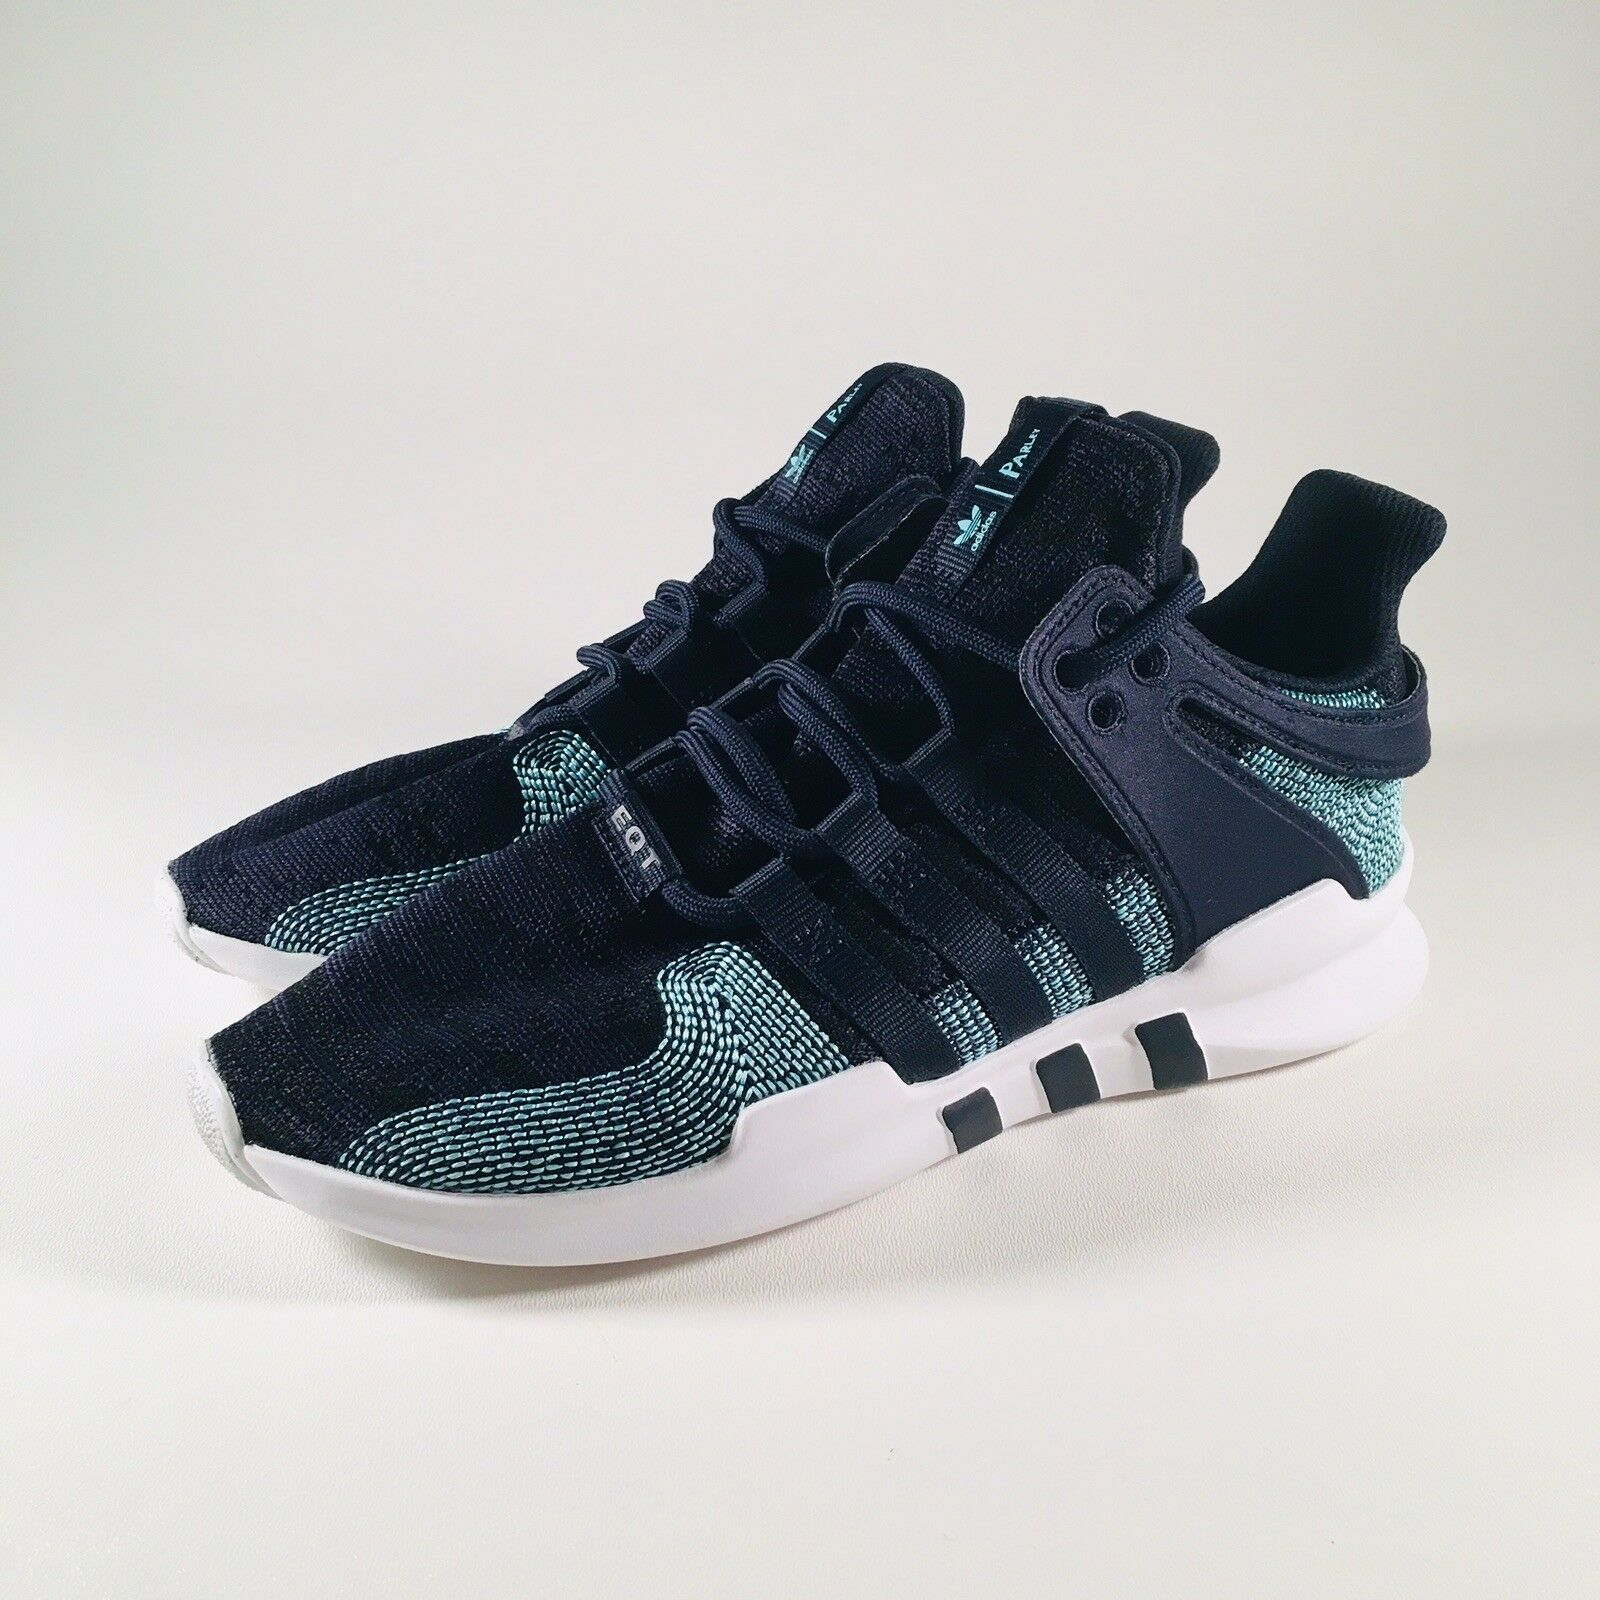 Adidas Originals EQT Equipment Support Support Support Adv Ck Parley Limited shoes Sz 9 CQ0299 1a5140